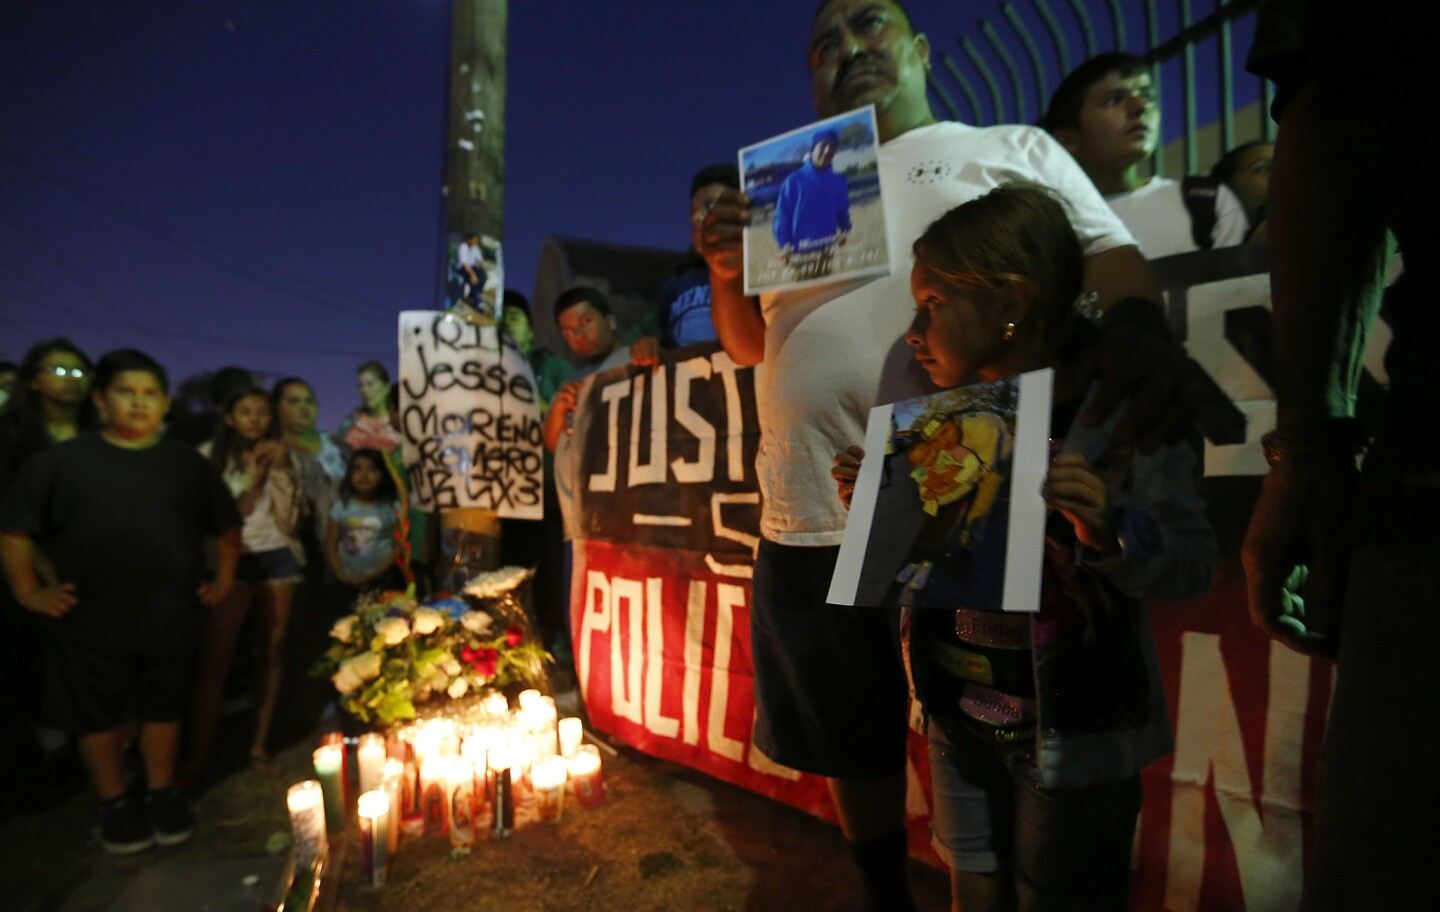 Boyle Heights residents gather near the intersection of Breed Street and Cesar Chavez Avenue on Wednesday night to protest the fatal officer-involved shooting of Jesse Moreno Romero.